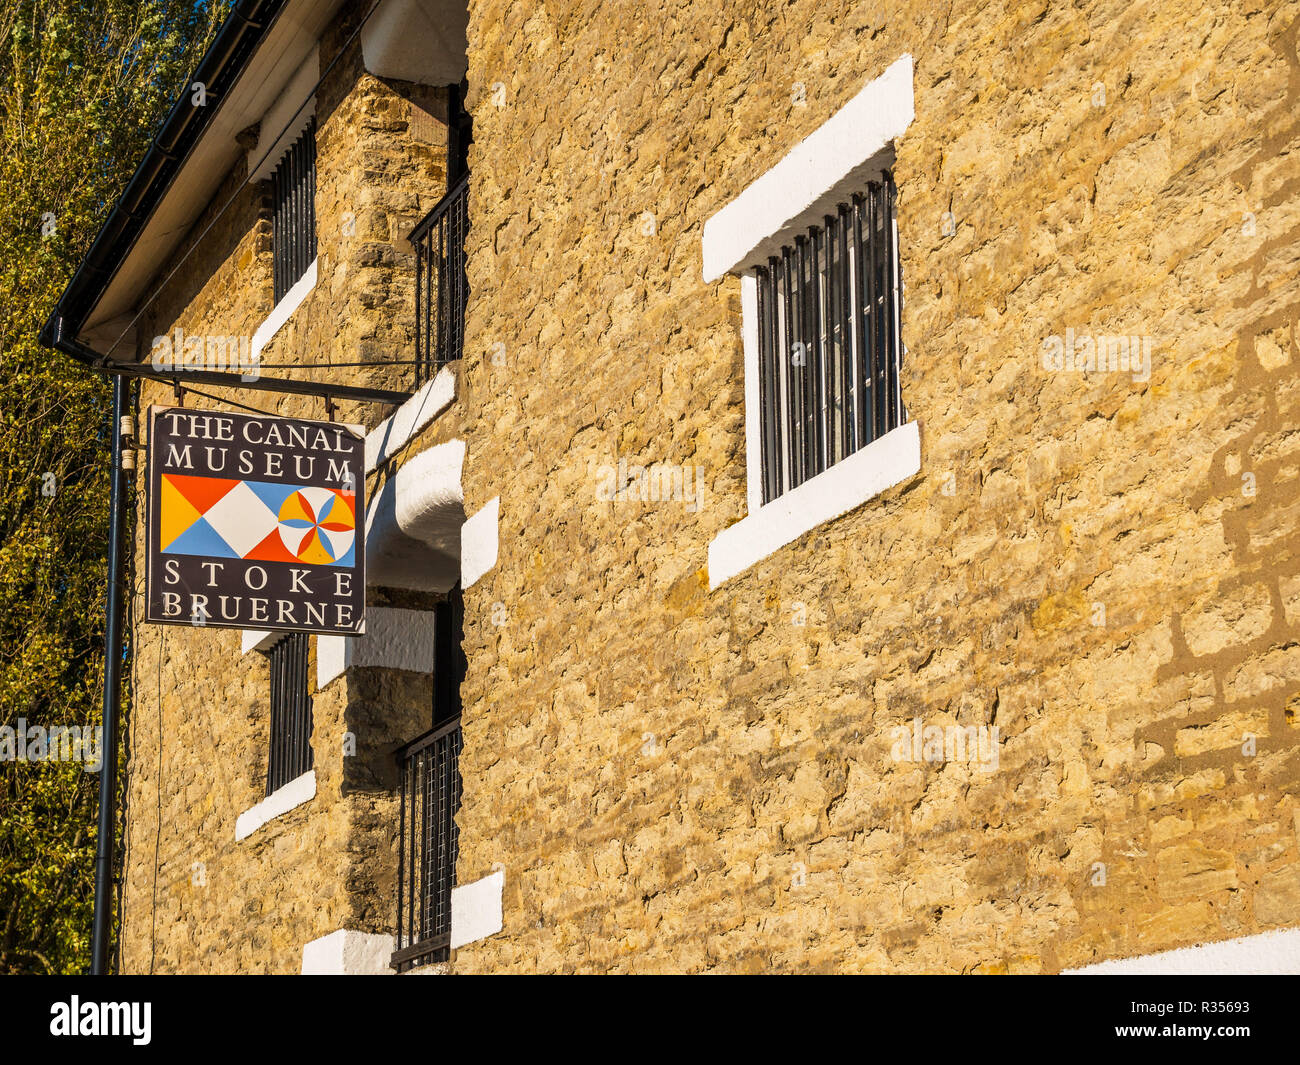 Stoke Bruerne UK October 31 2018: canal museum logo next to canal river in village in northamptonshire, england. - Stock Image